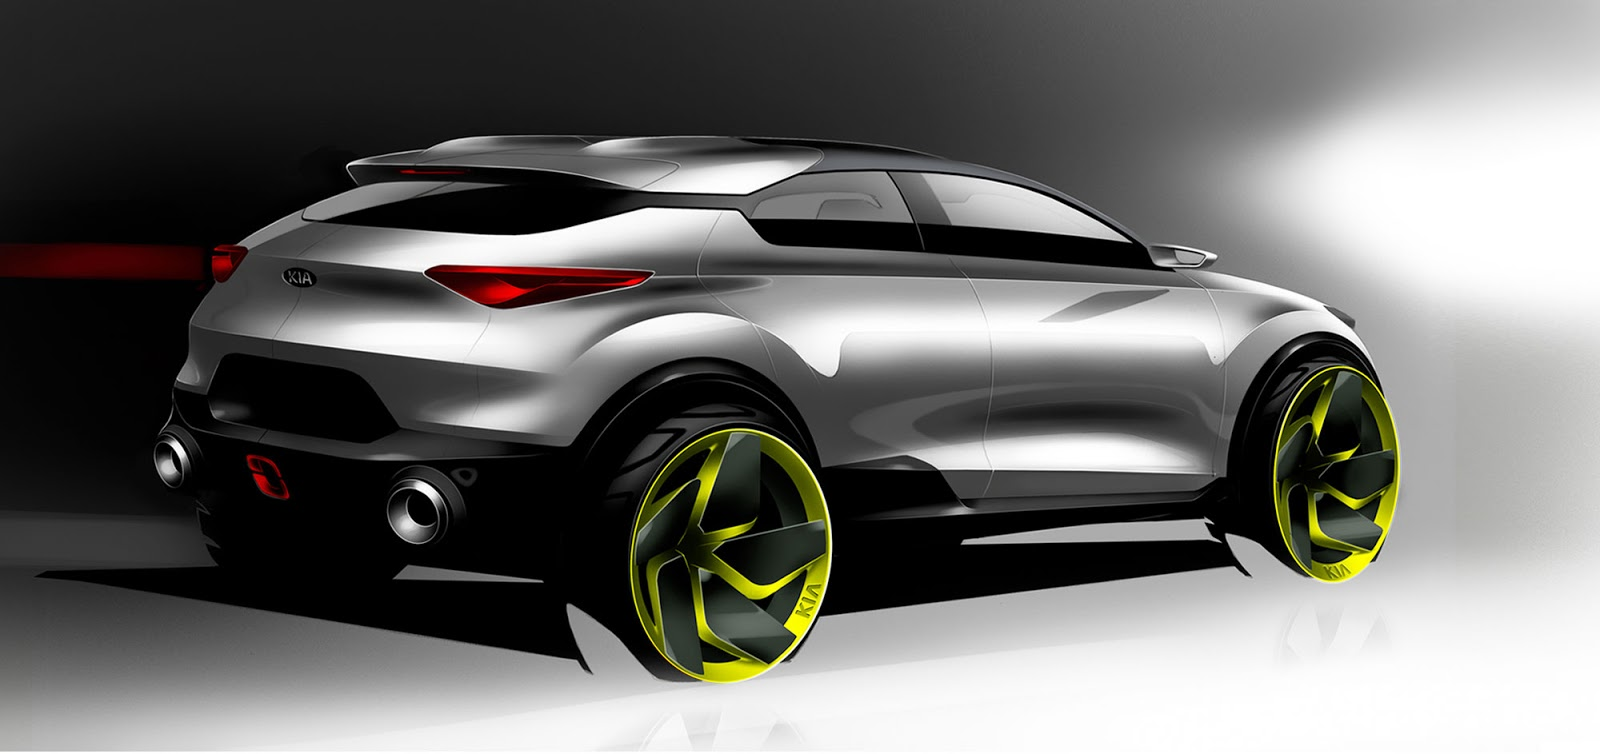 Kia Stonic sketch - option 1 styling from the rear